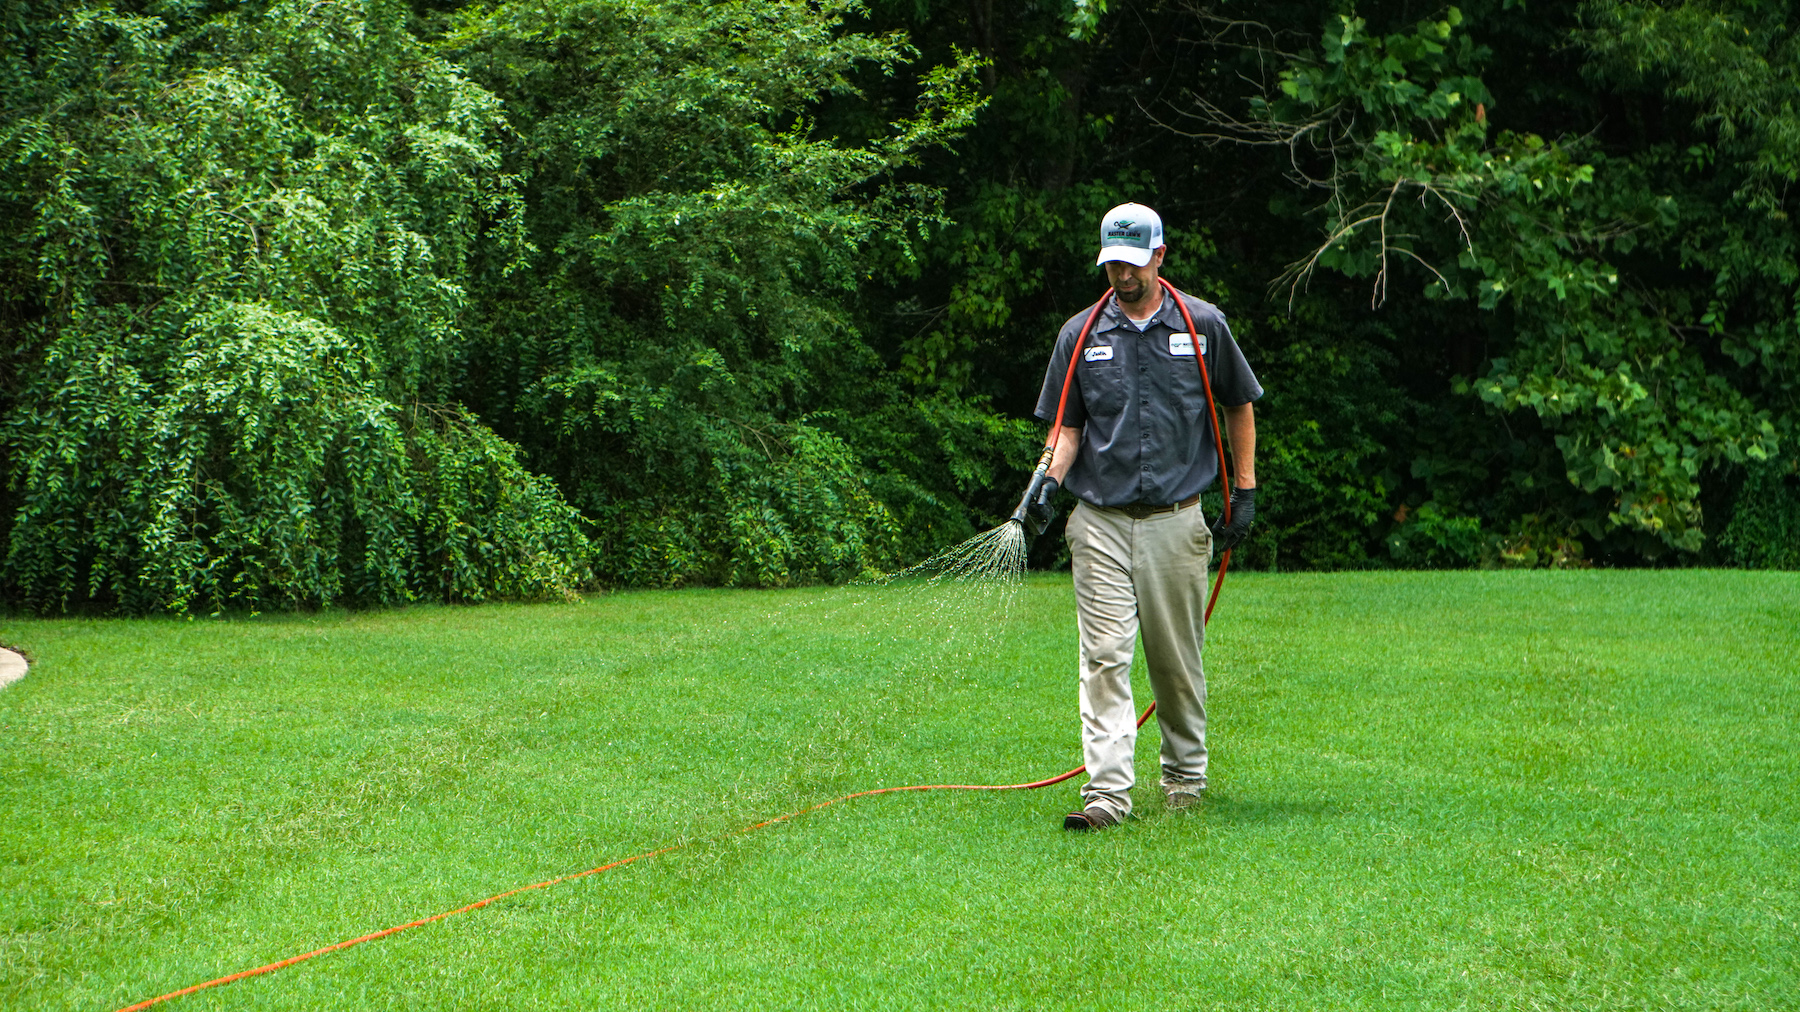 lawn care technician spraying